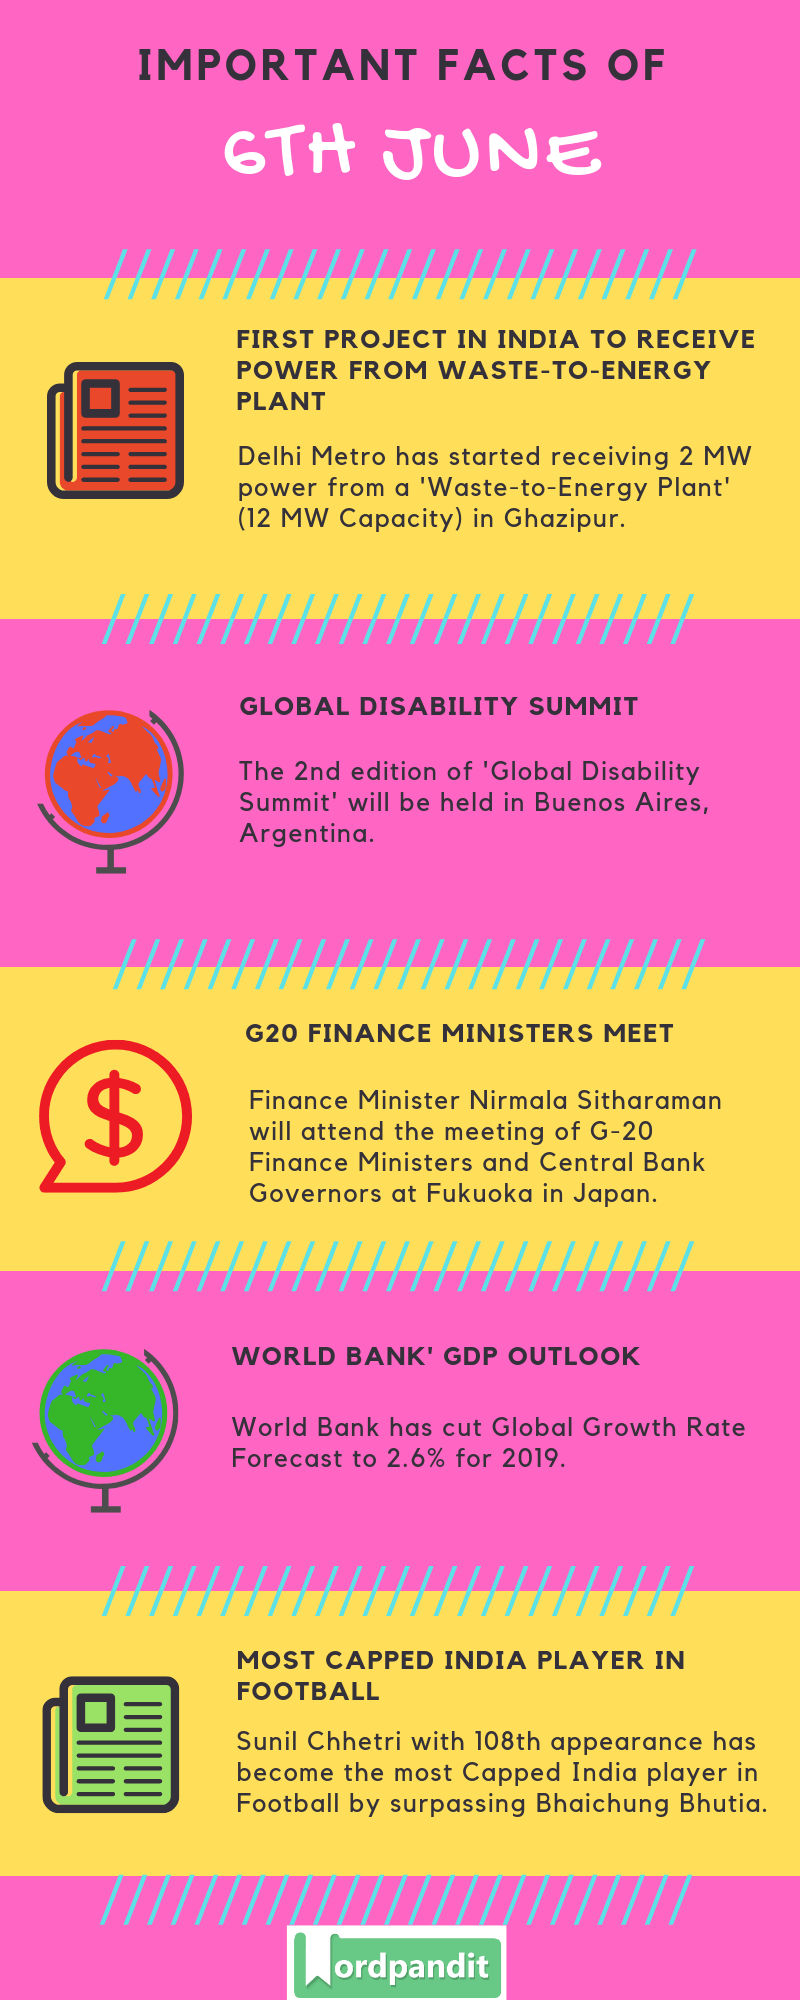 Daily Current Affairs 6 June 2019 Current Affairs Quiz 6 June 2019 Current Affairs Infographic